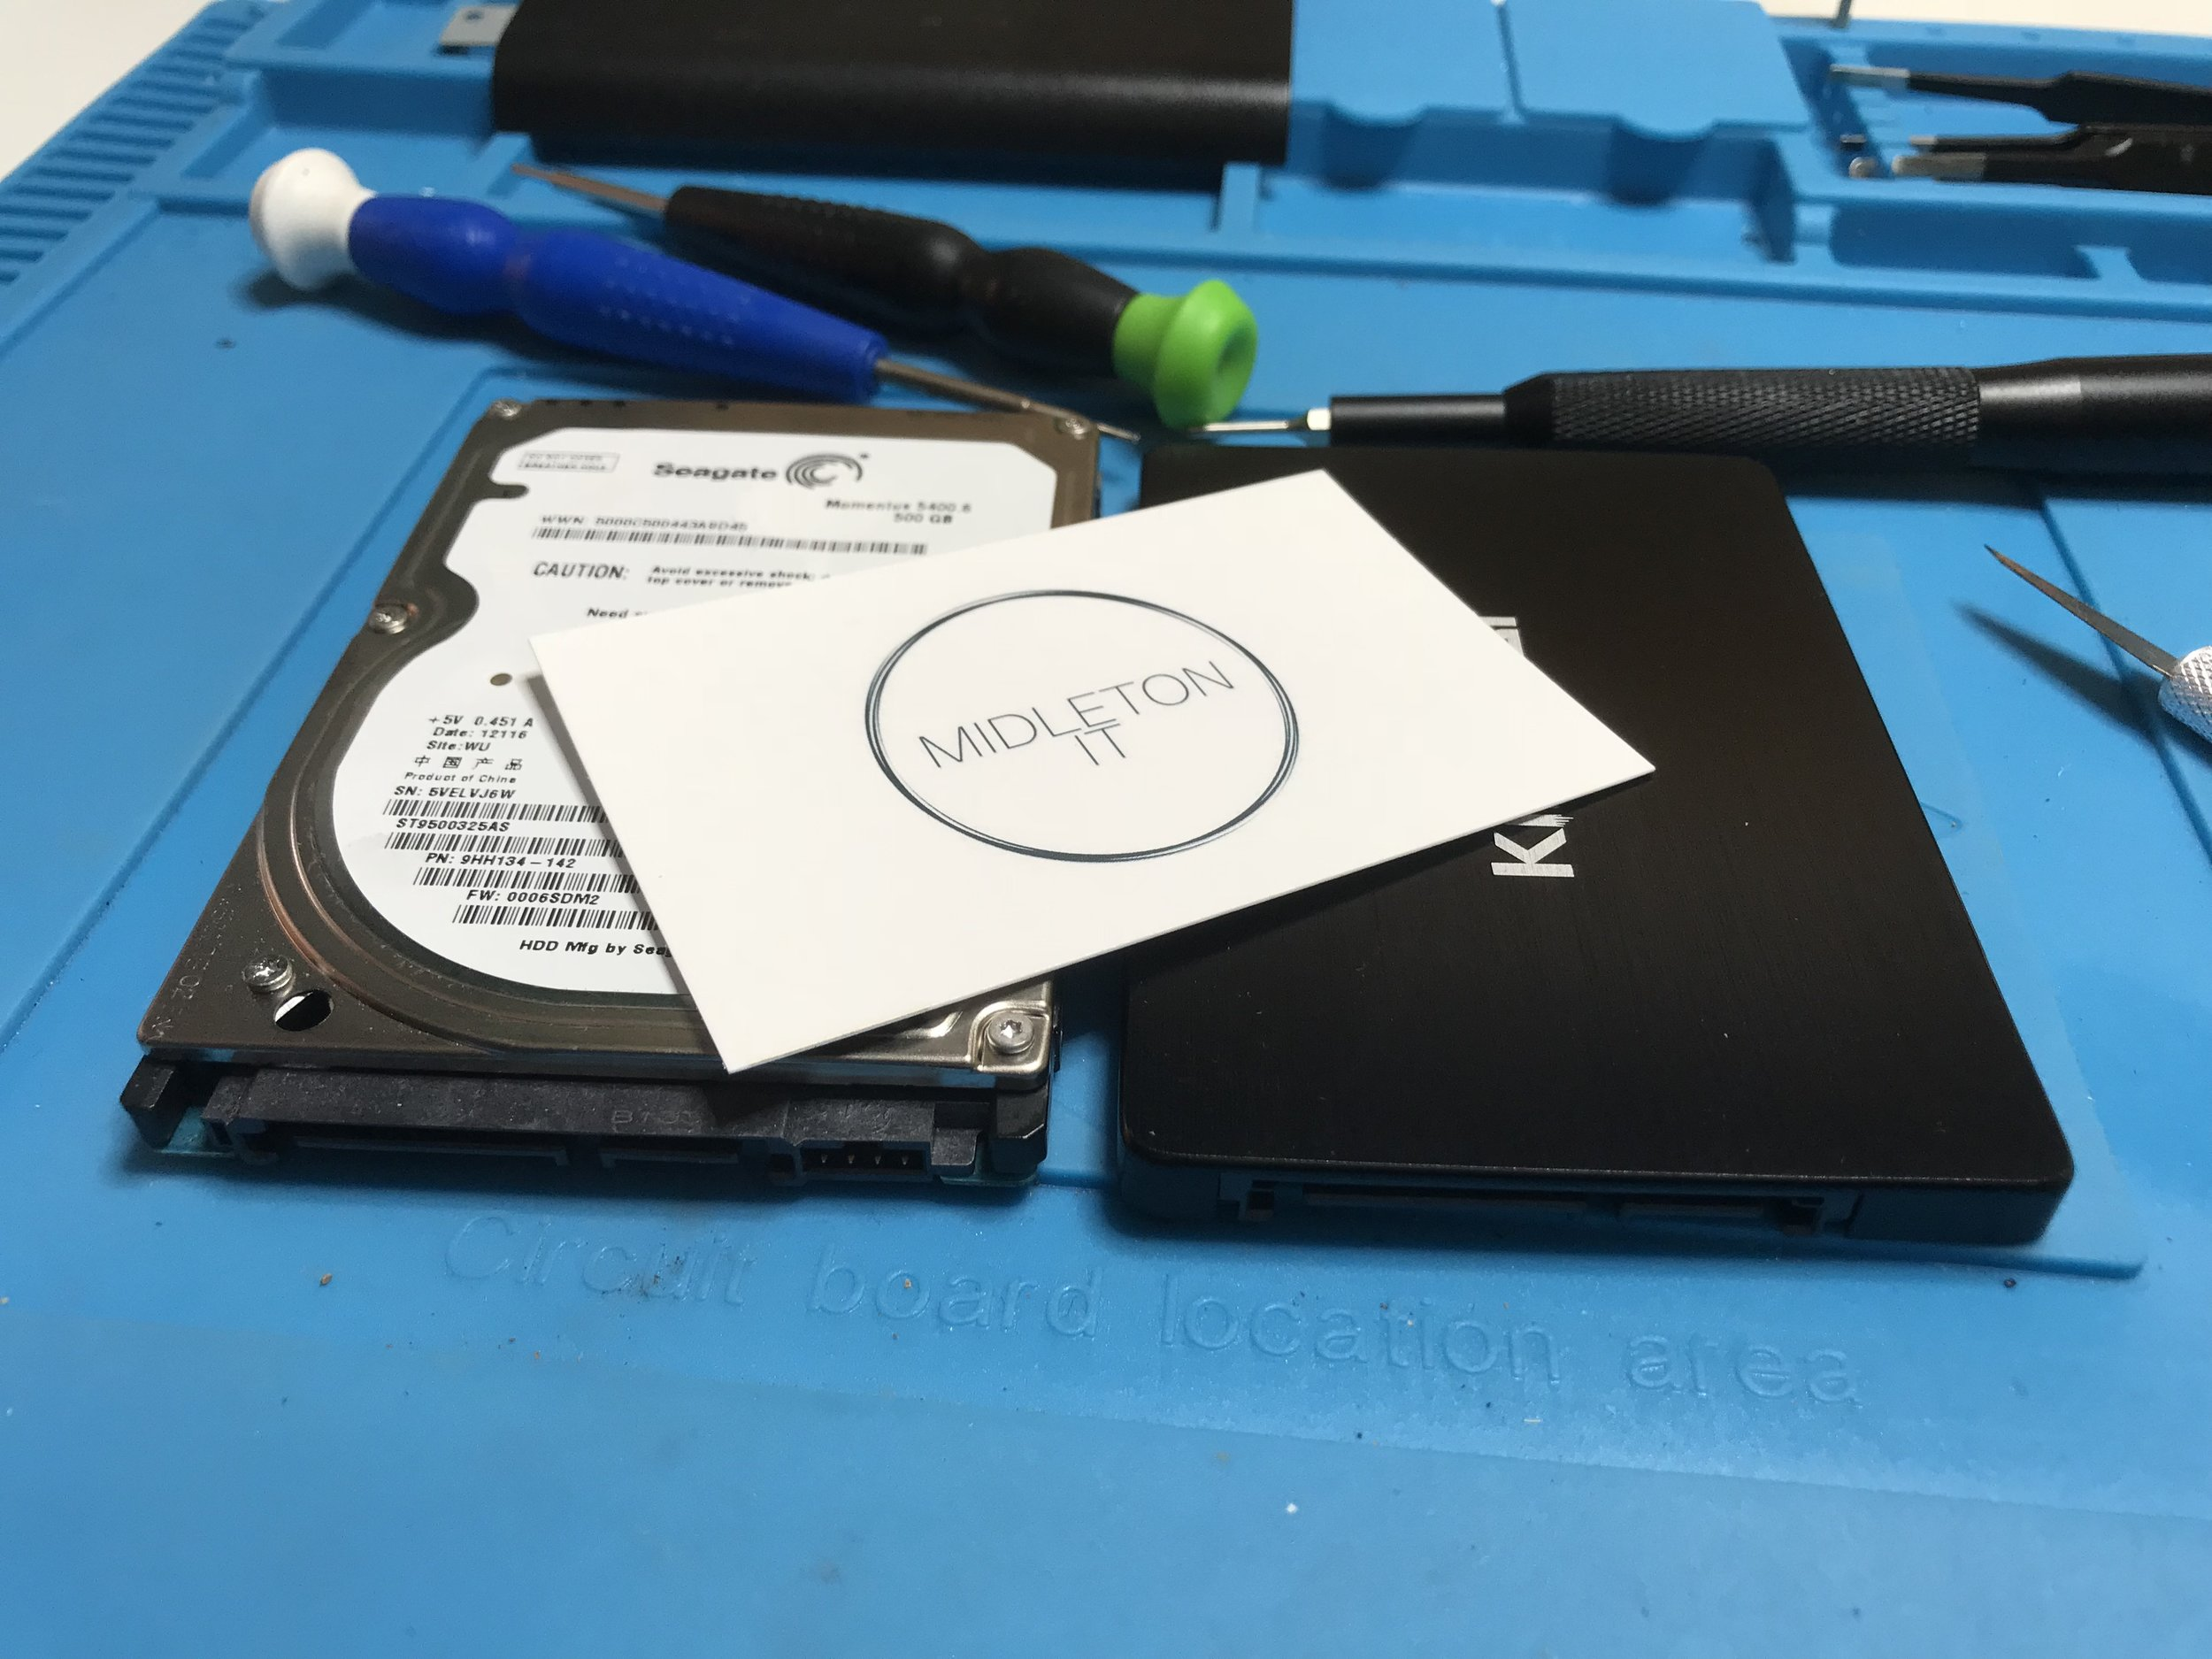 HARDDRIVE-AND-SSD-WITH-MIDLETONIT-BUSINESS-CARD-ON-TOP.JPG